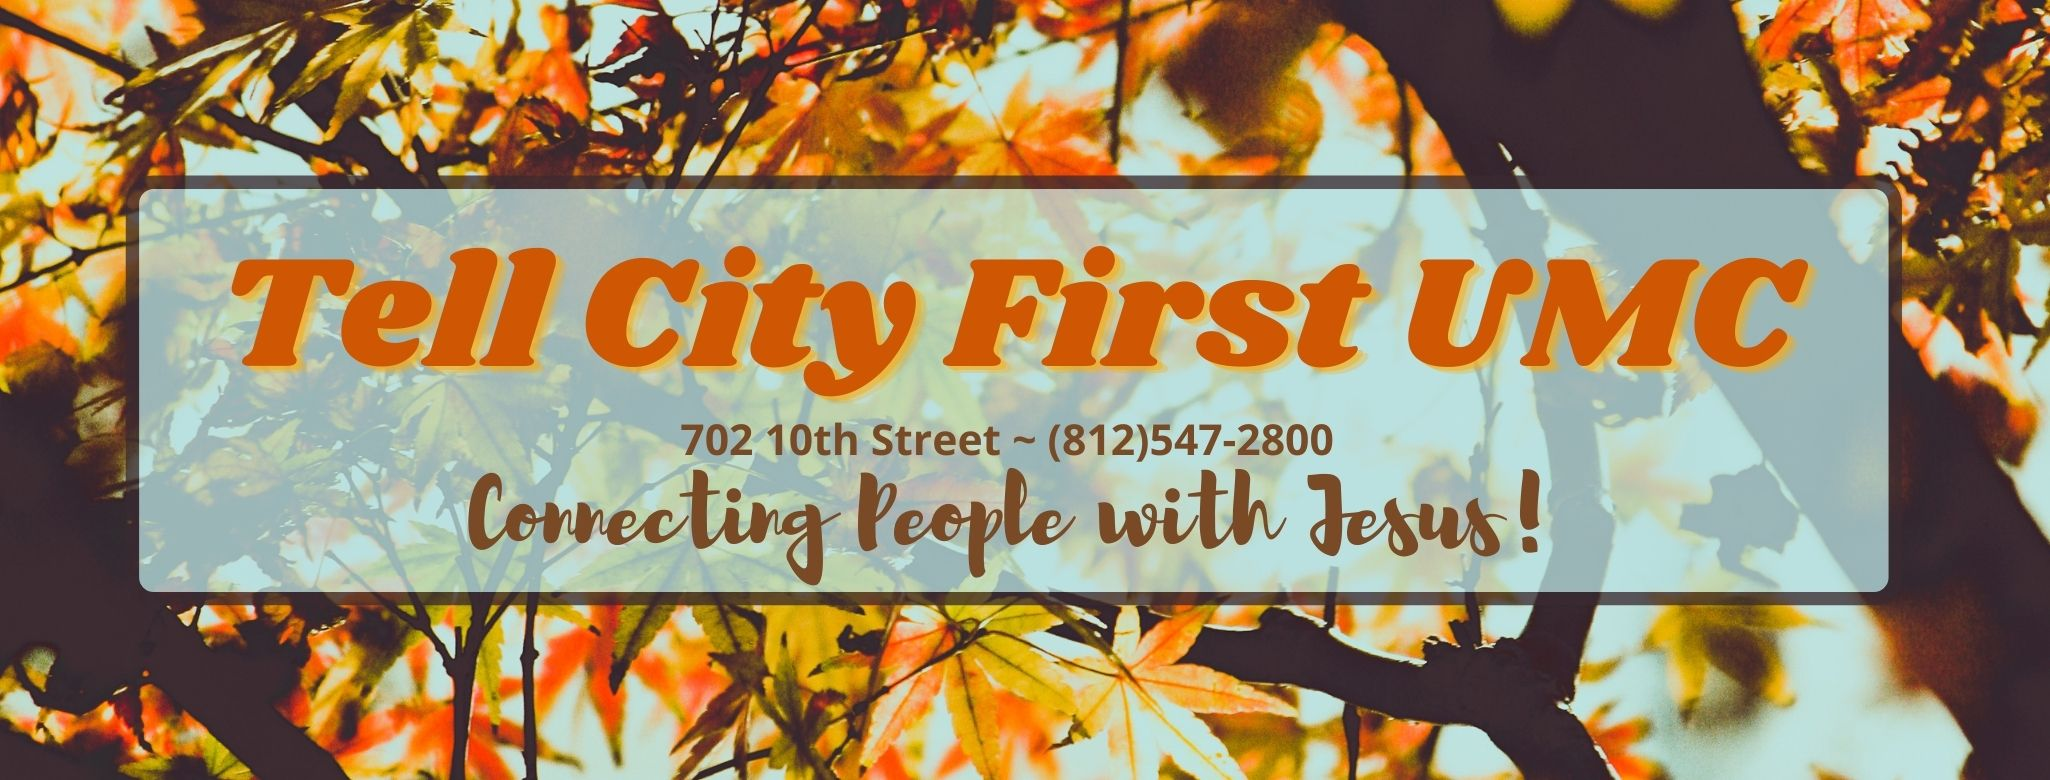 Fall Tell City First UMC